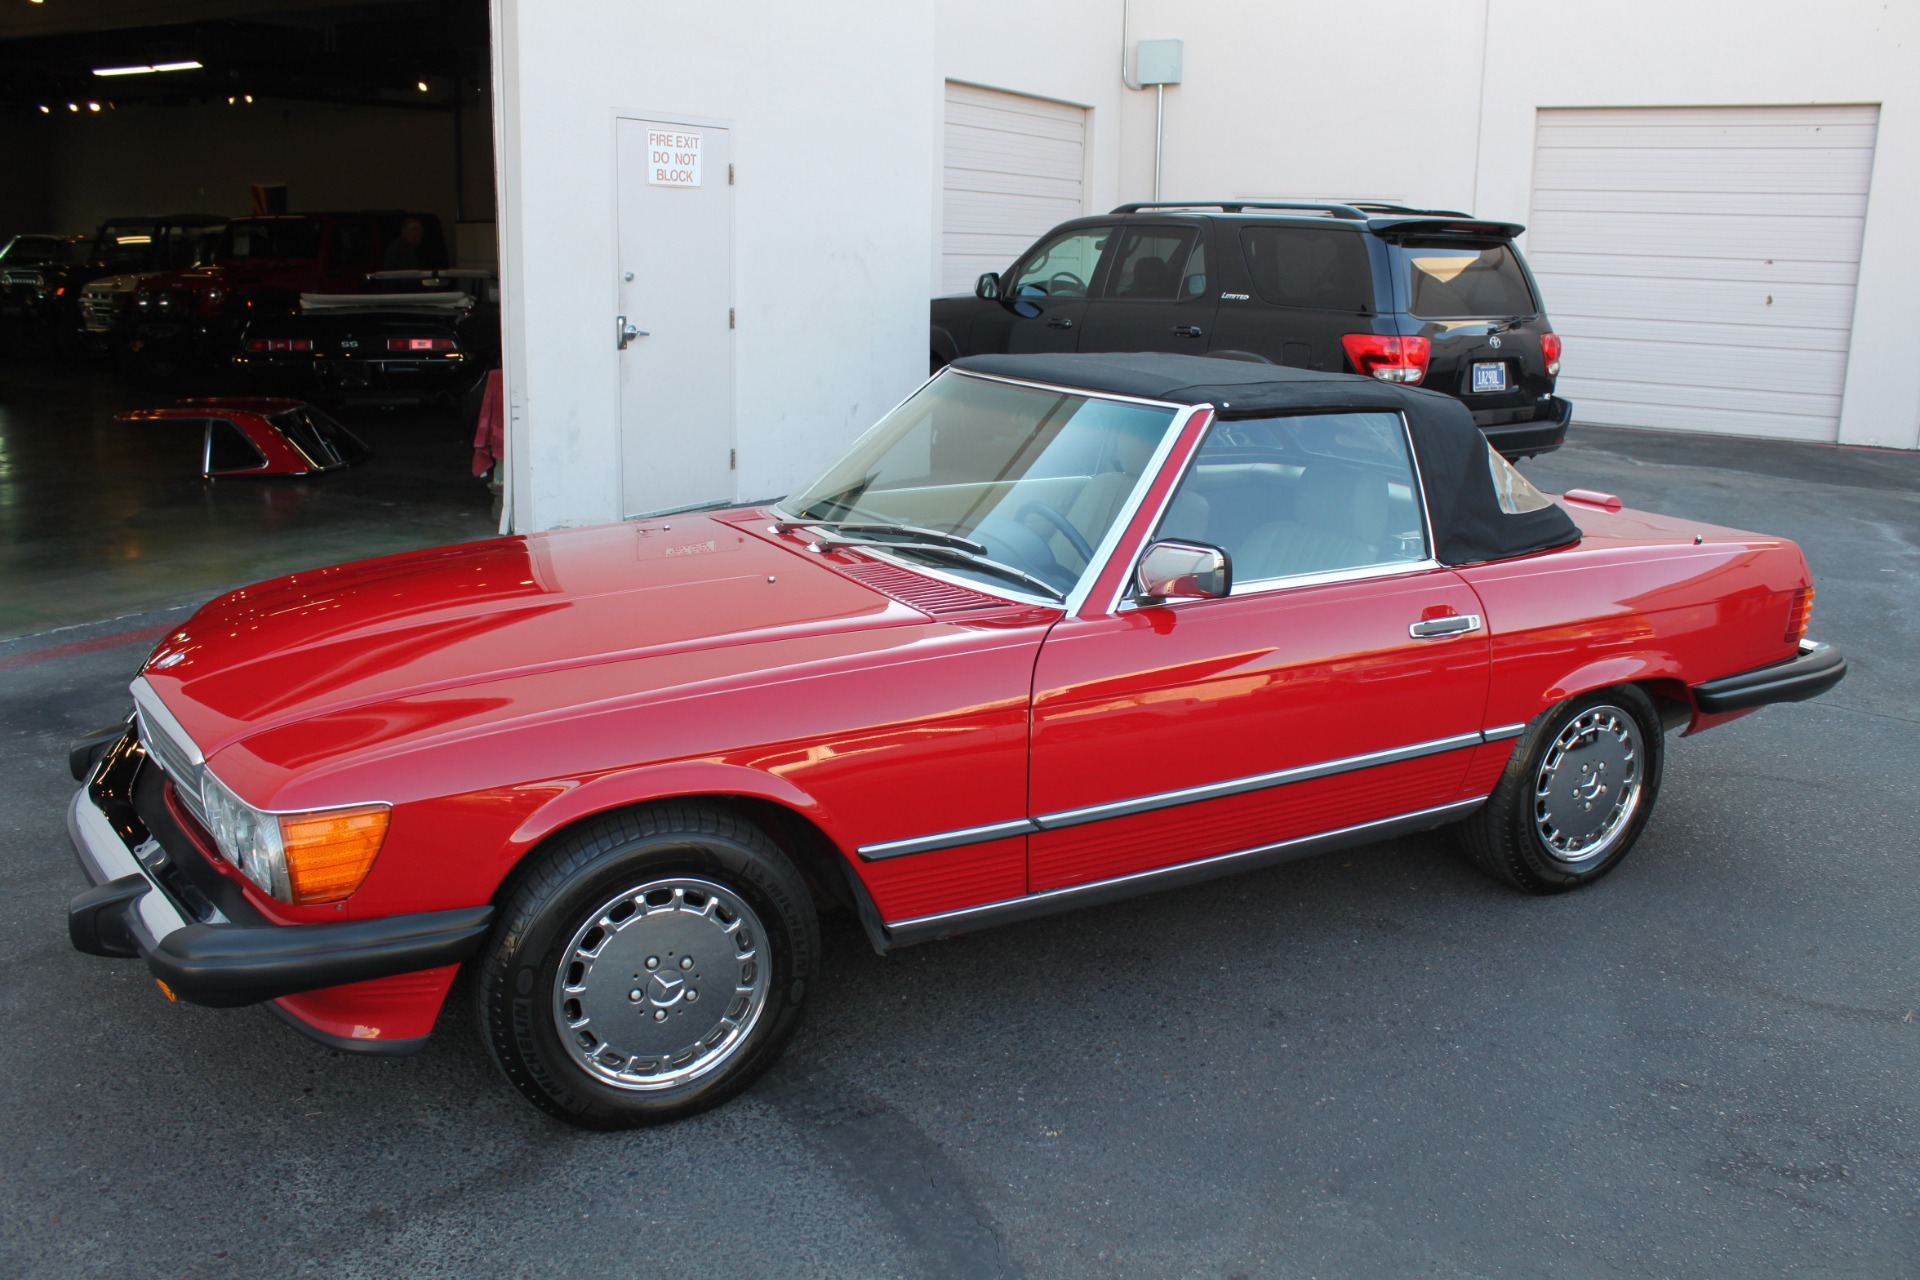 Used-1989-Mercedes-Benz-560-Series-560SL-Jaguar